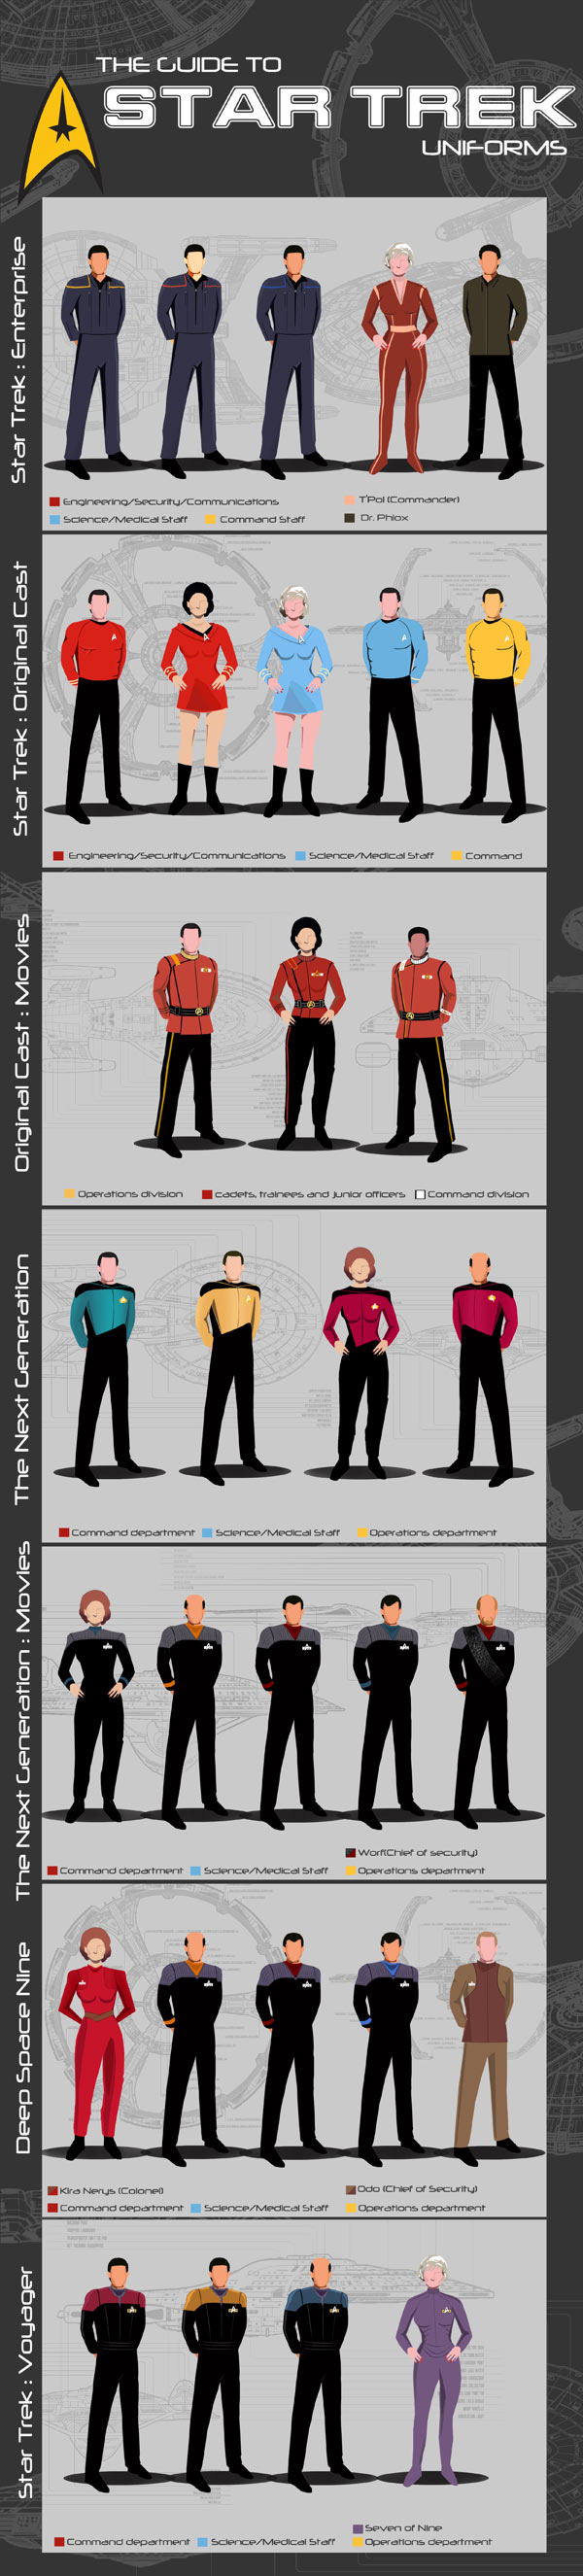 a guide to star trek uniforms.jpg